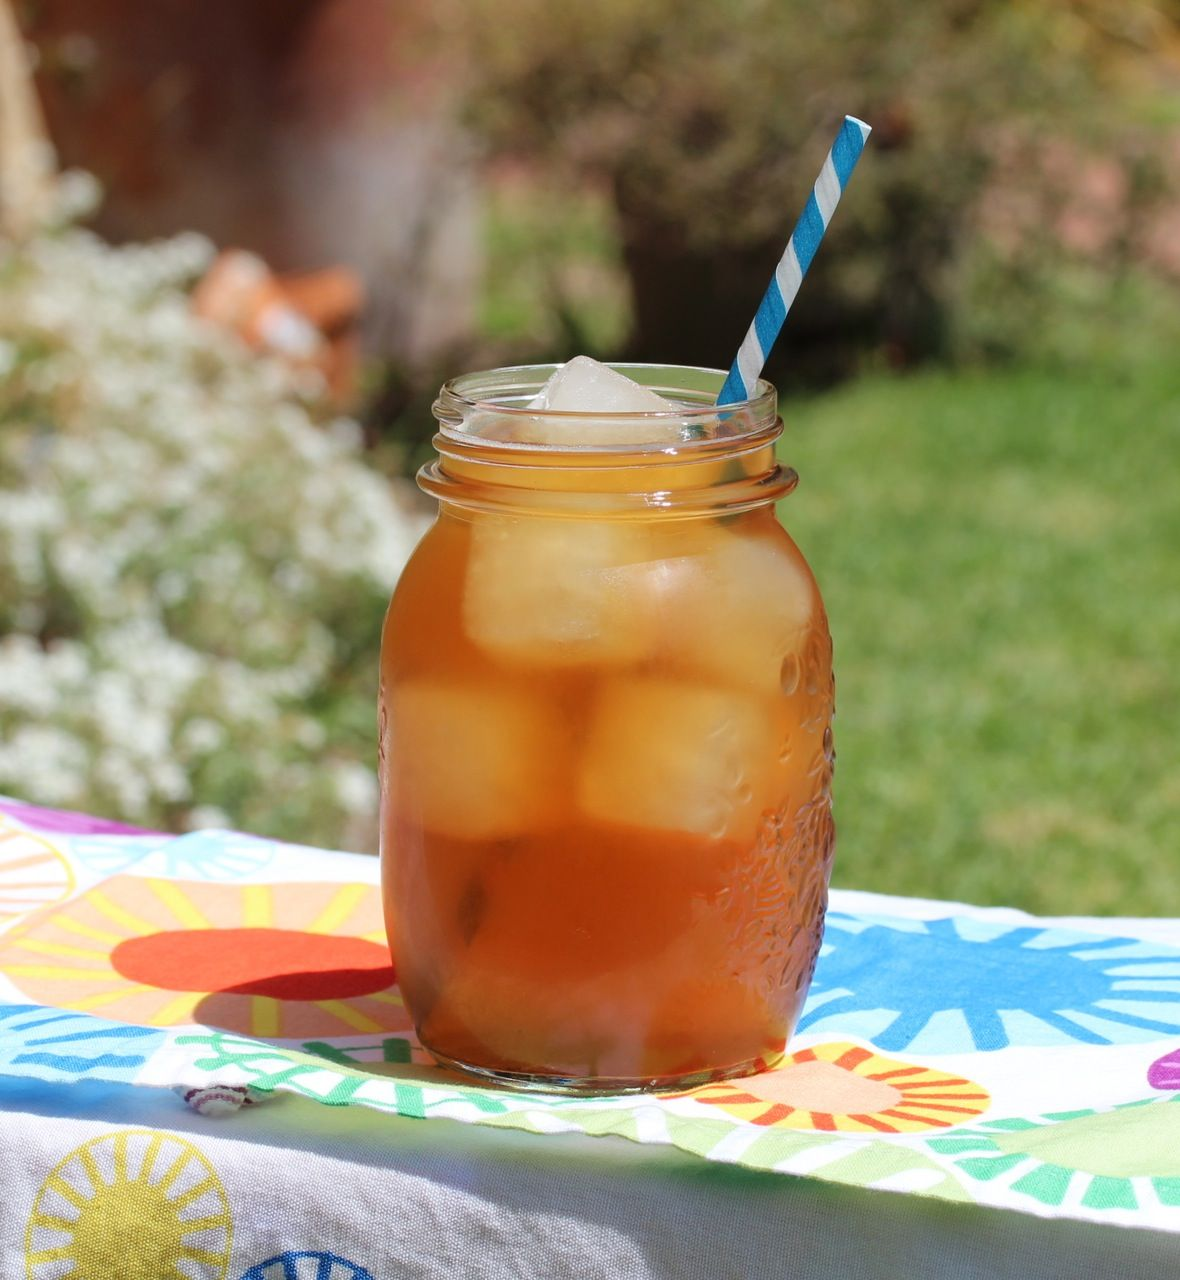 Lemonade Ice Cubes in Iced Tea. Genius! Why haven't I thought of this?!